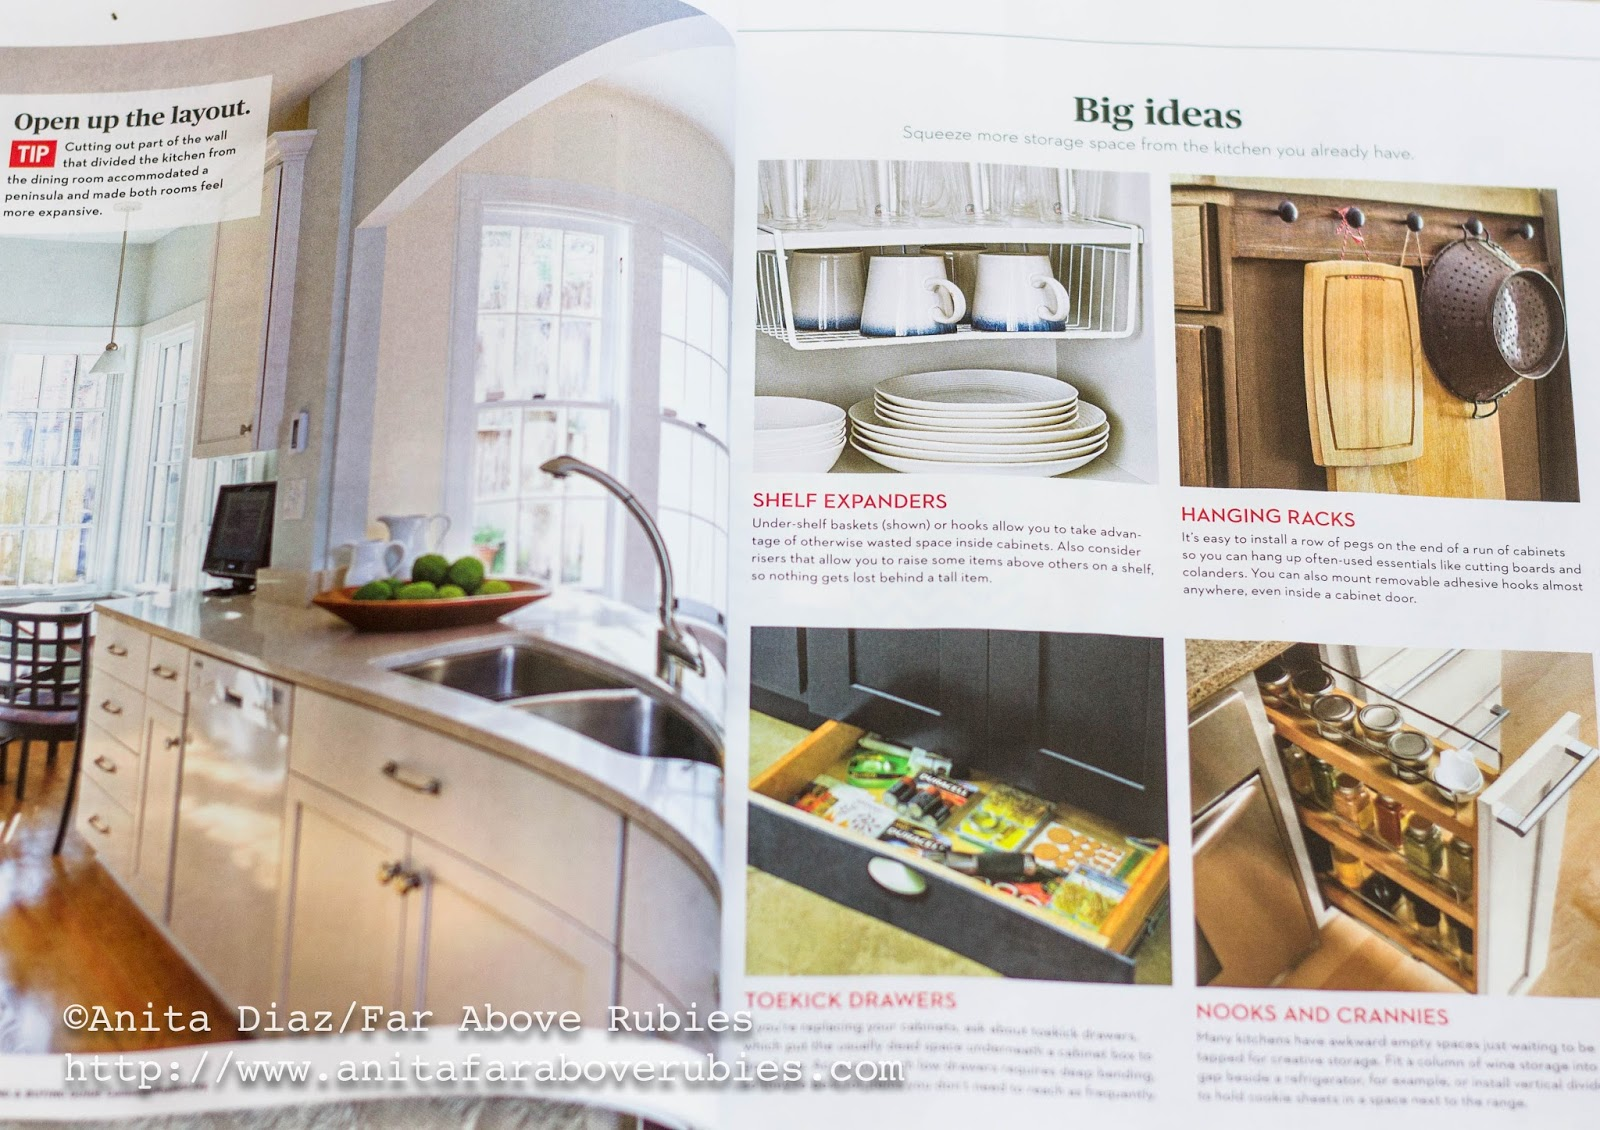 Far Above Rubies: Consumer Reports Kitchen feature